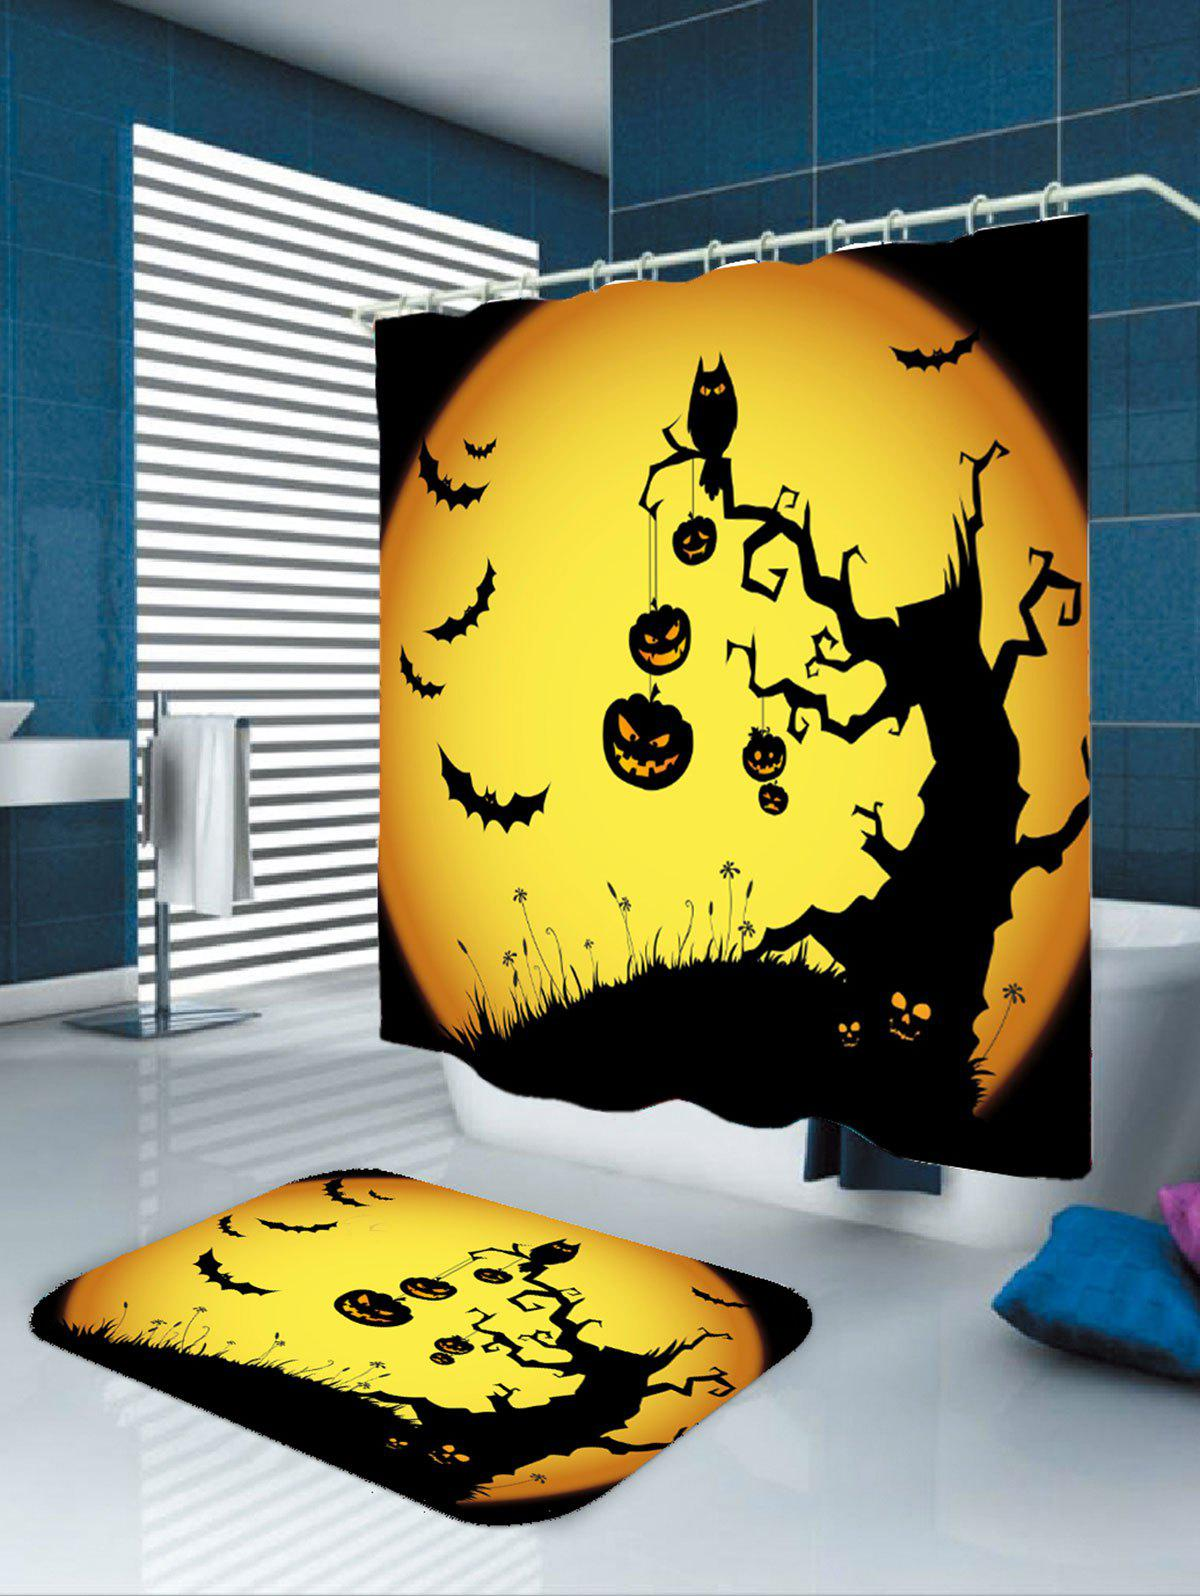 Waterproof Halloween Pumpkin Withered Tree Print Shower Curtain - YELLOW/BLACK W79 INCH * L71 INCH